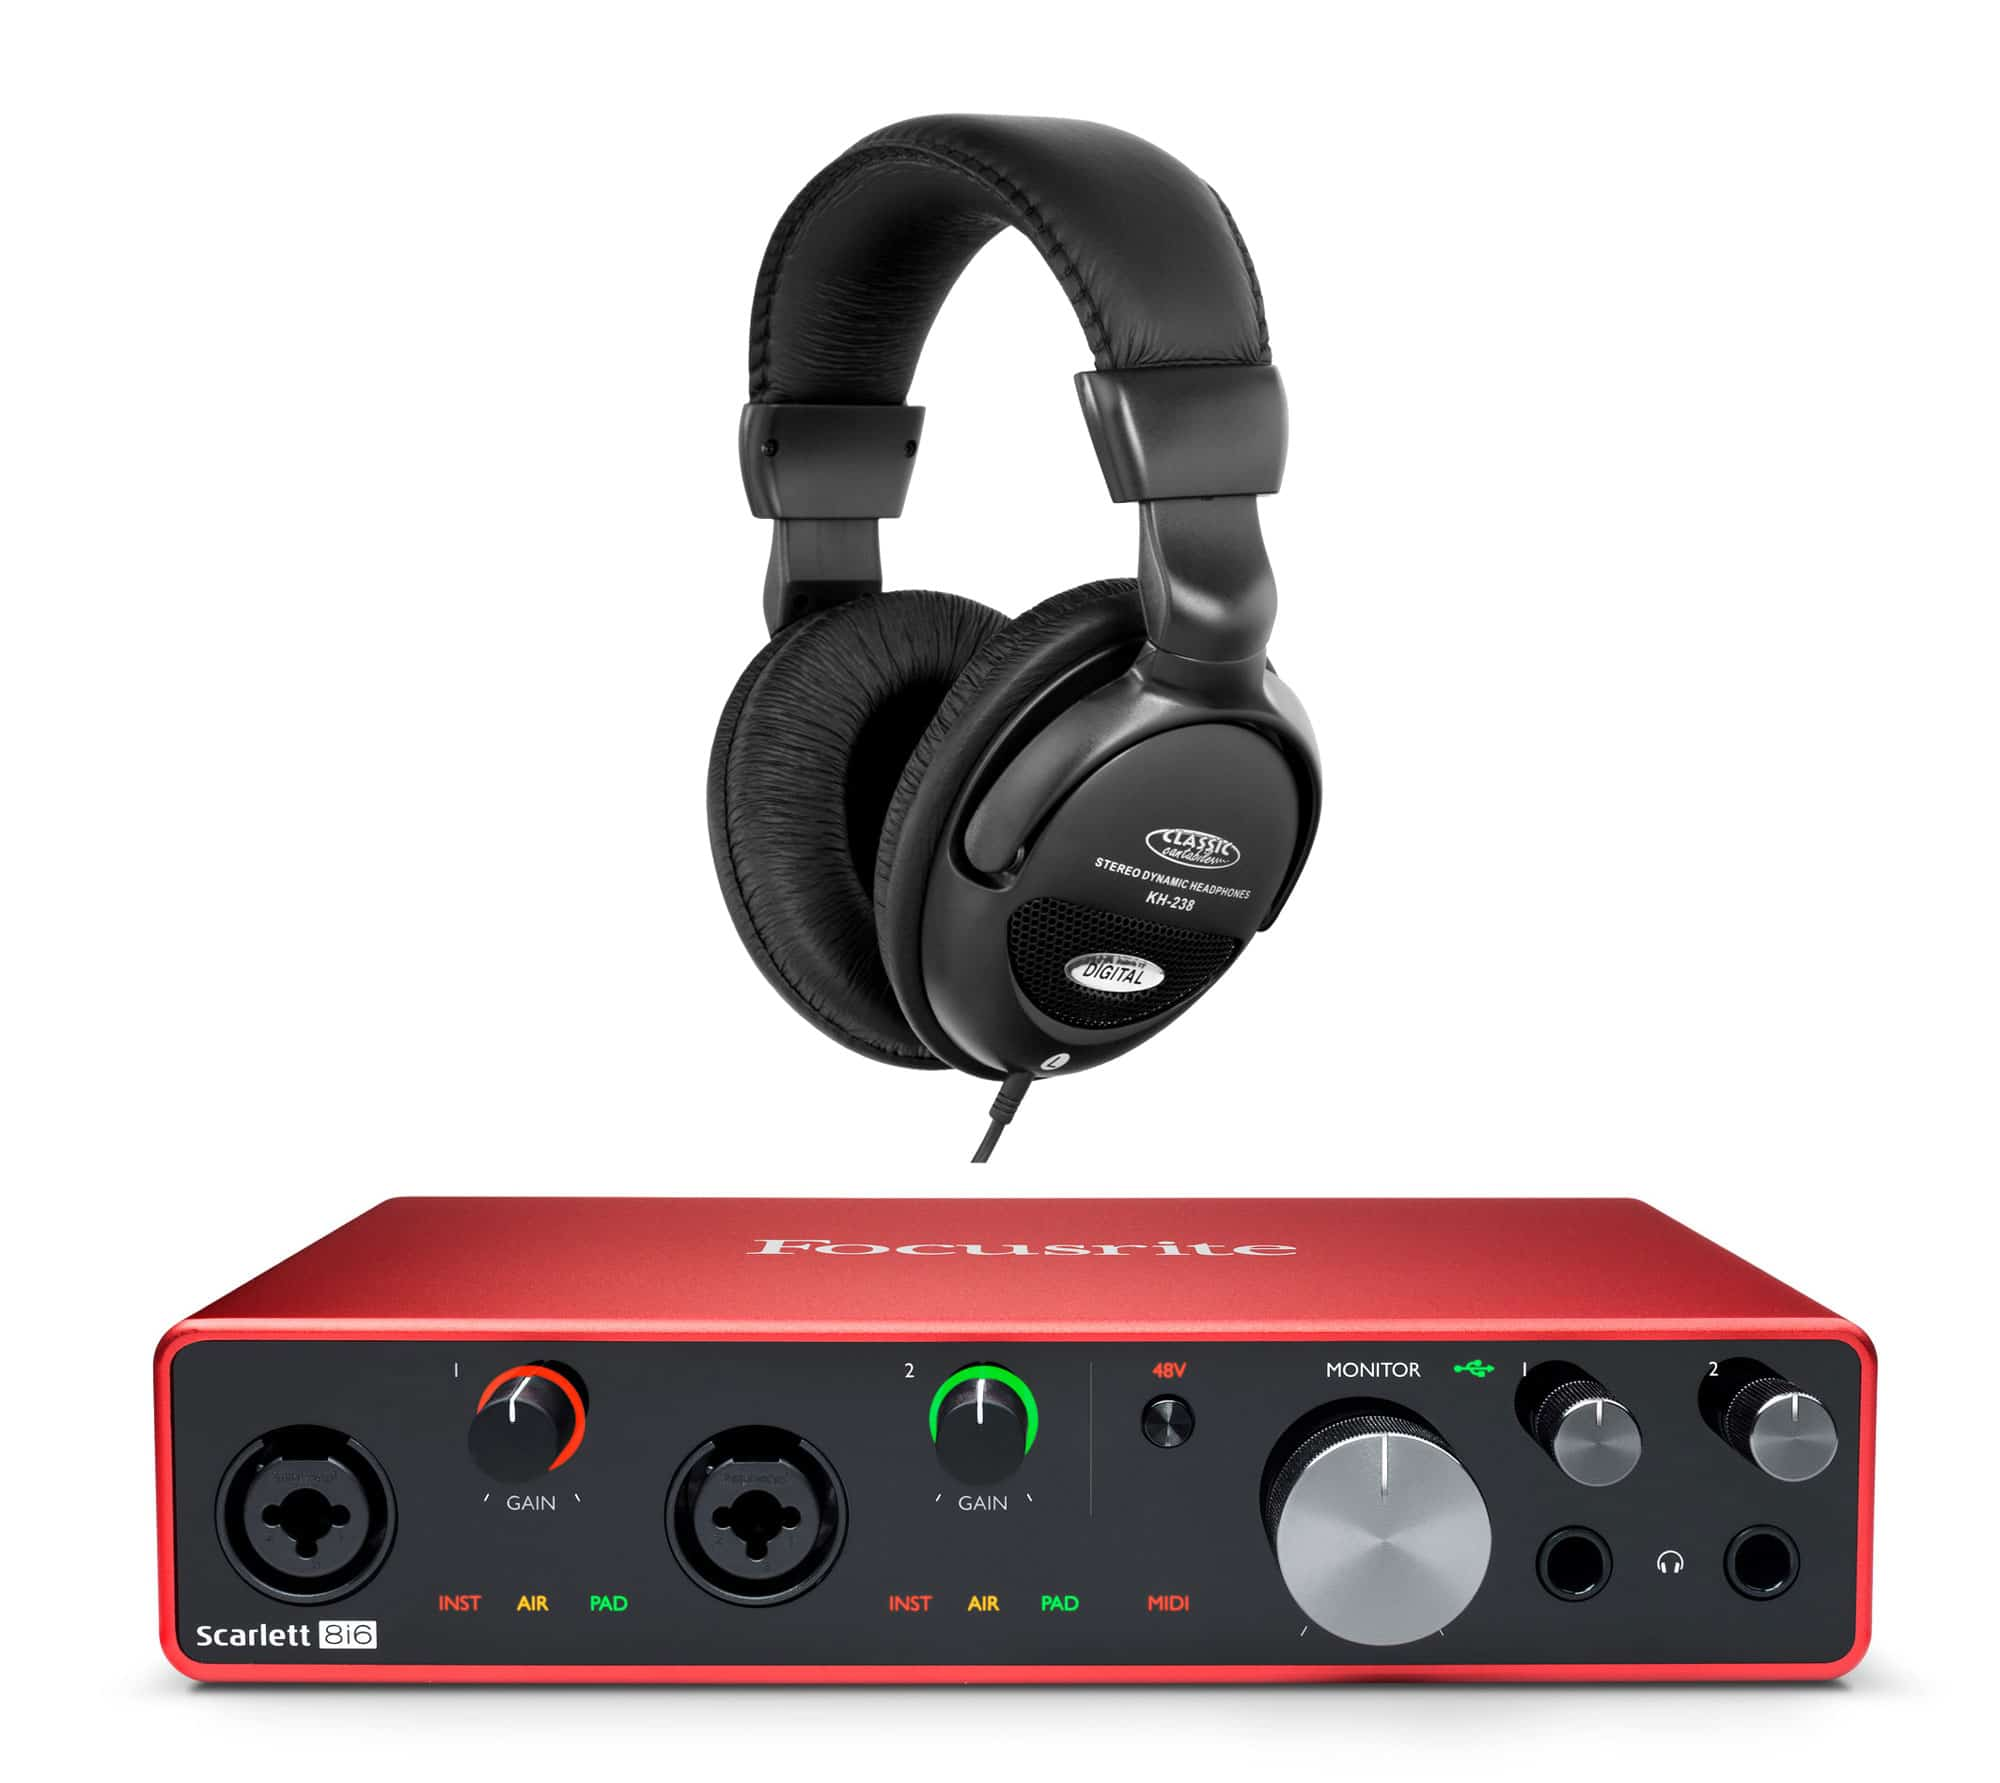 Pchardware - Focusrite Scarlett 8i6 USB Audio Interface Set - Onlineshop Musikhaus Kirstein